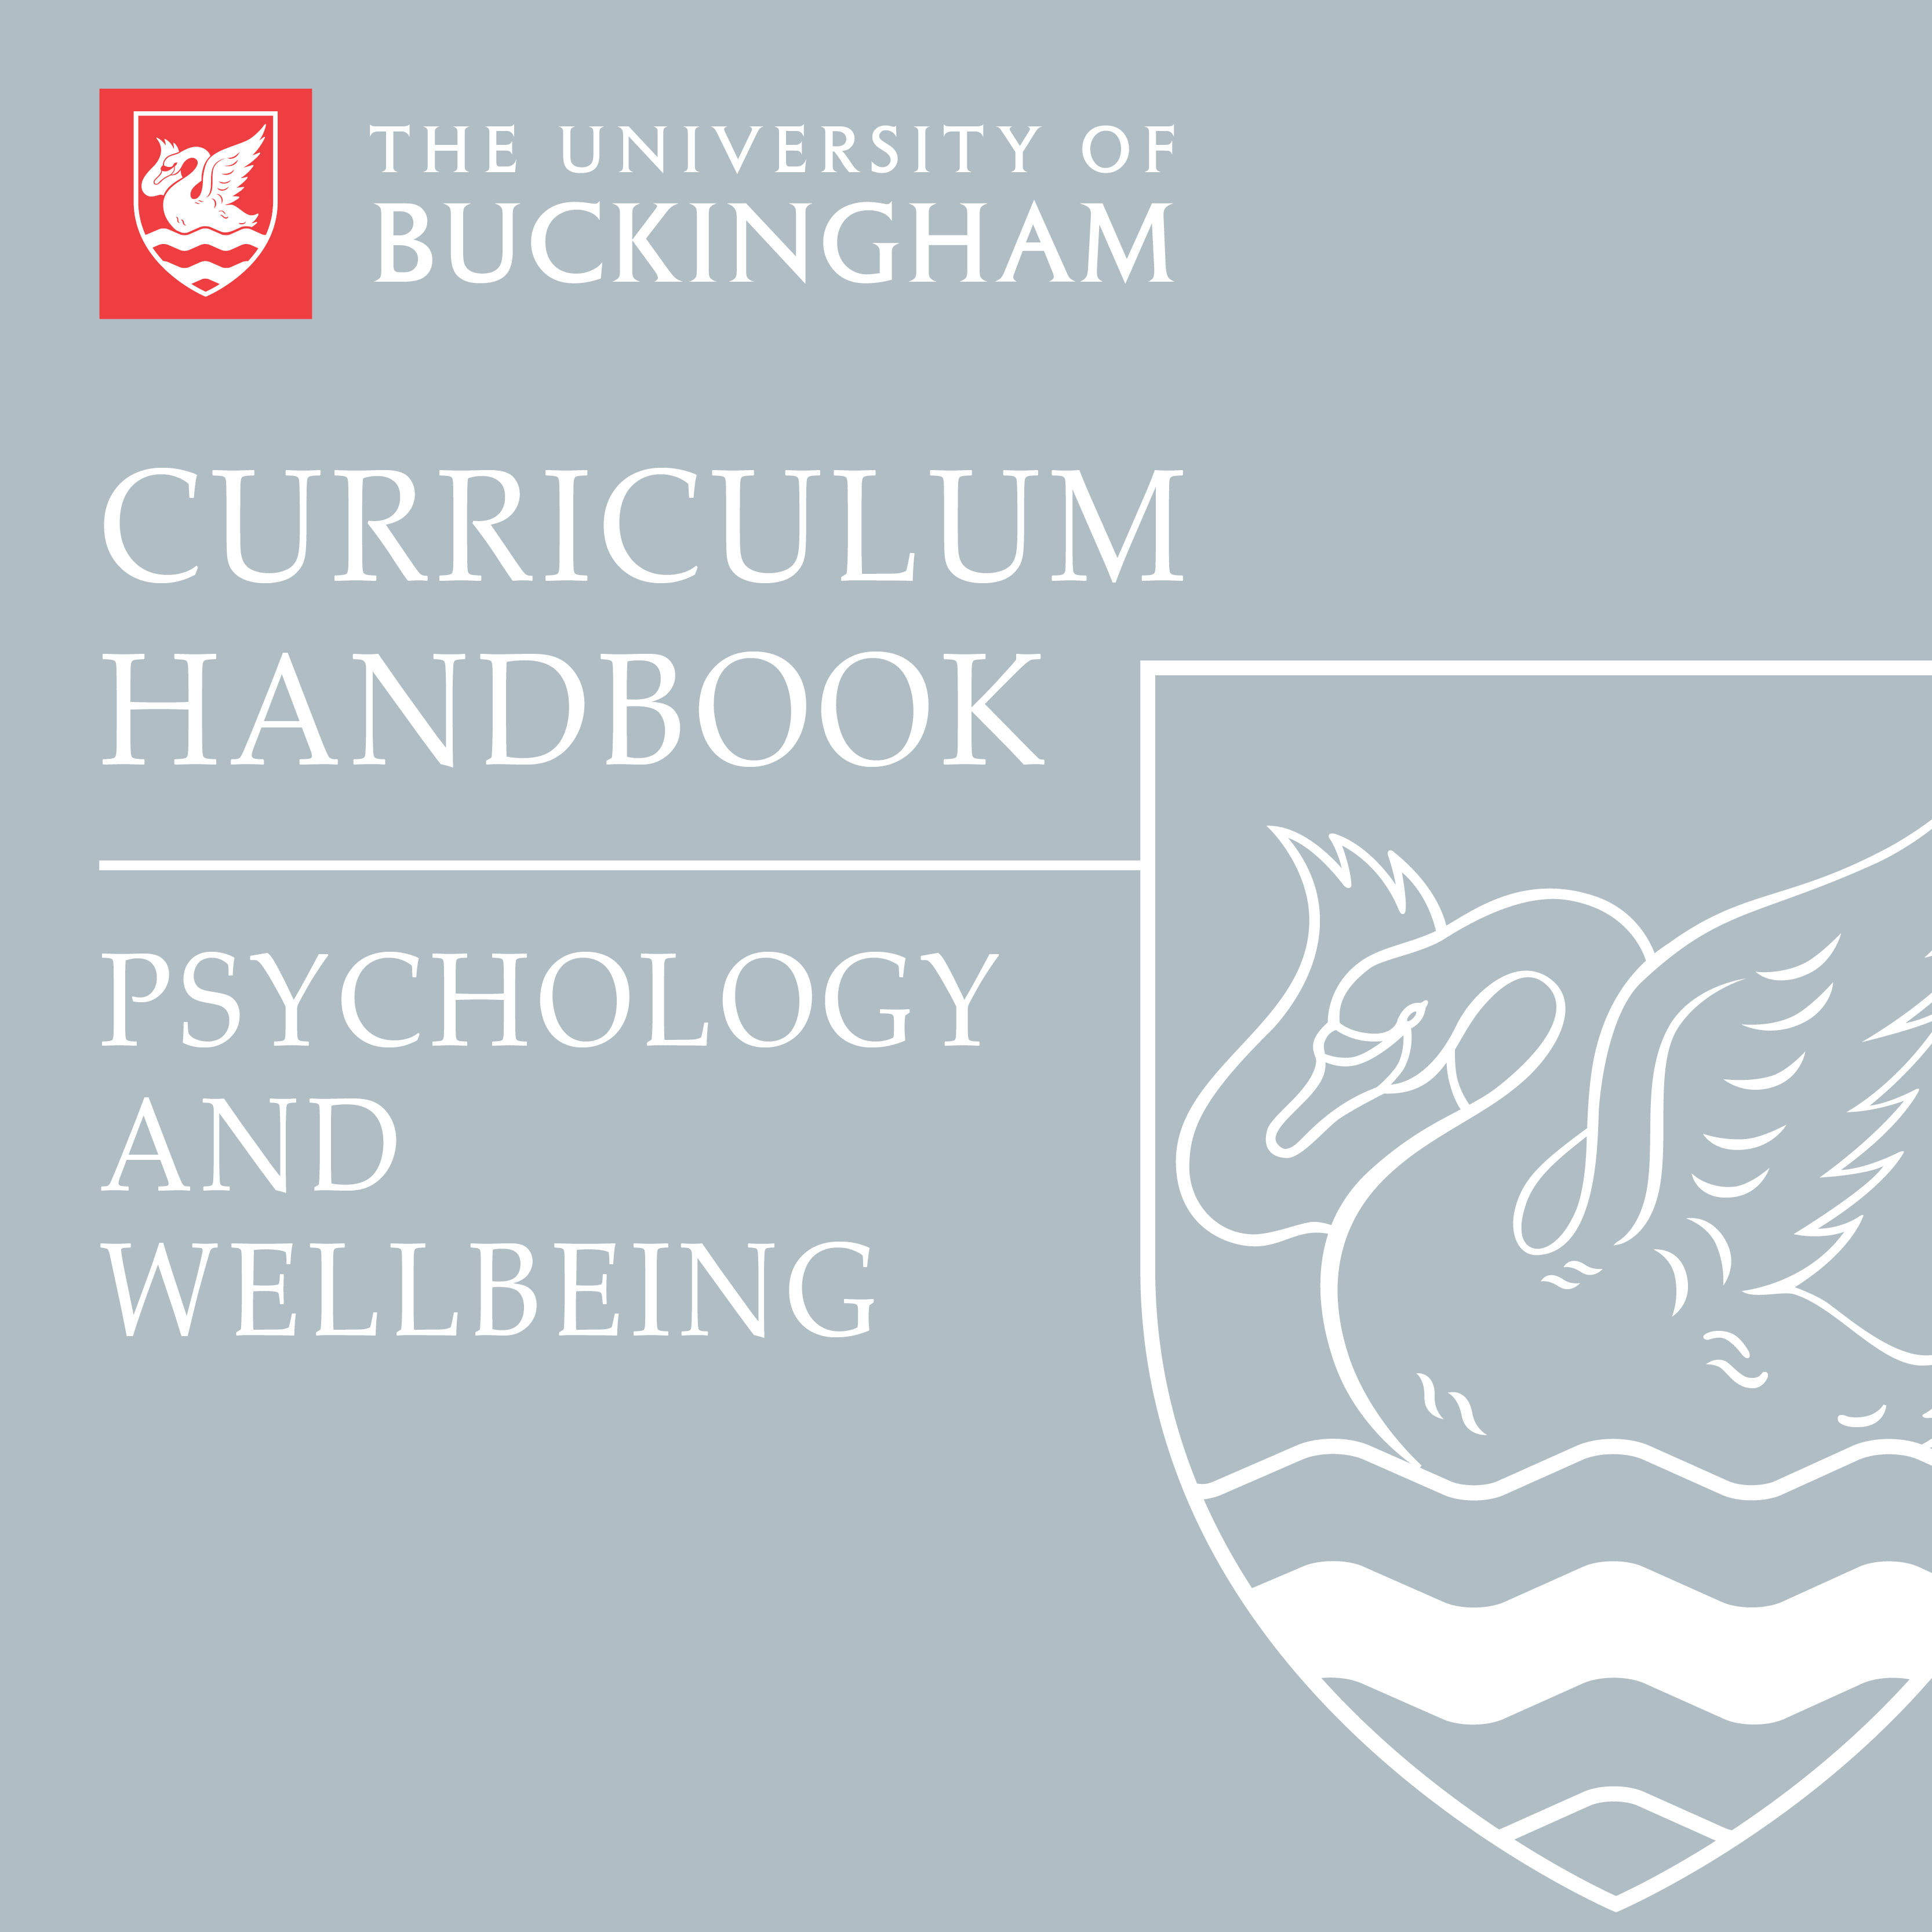 Curriculum Handbook - Psychology and Wellbeing - front cover - online